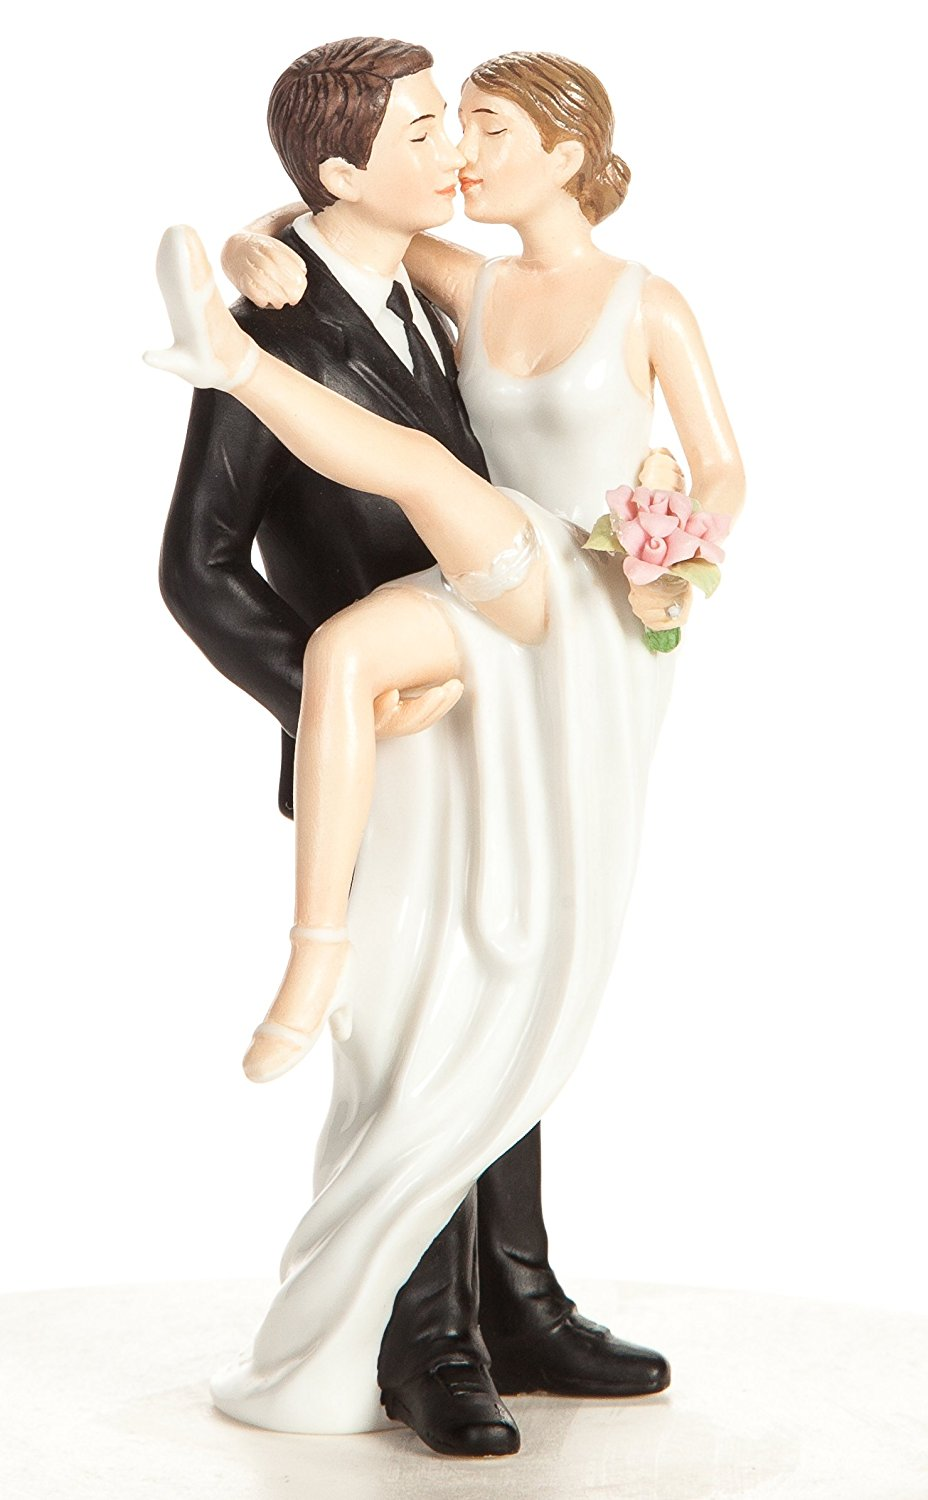 Wedding Collectibles Personalized Over the Threshold Wedding Bride and Groom Cake Topper Figurine: Bride Hair: RED - Groom Hair: RED